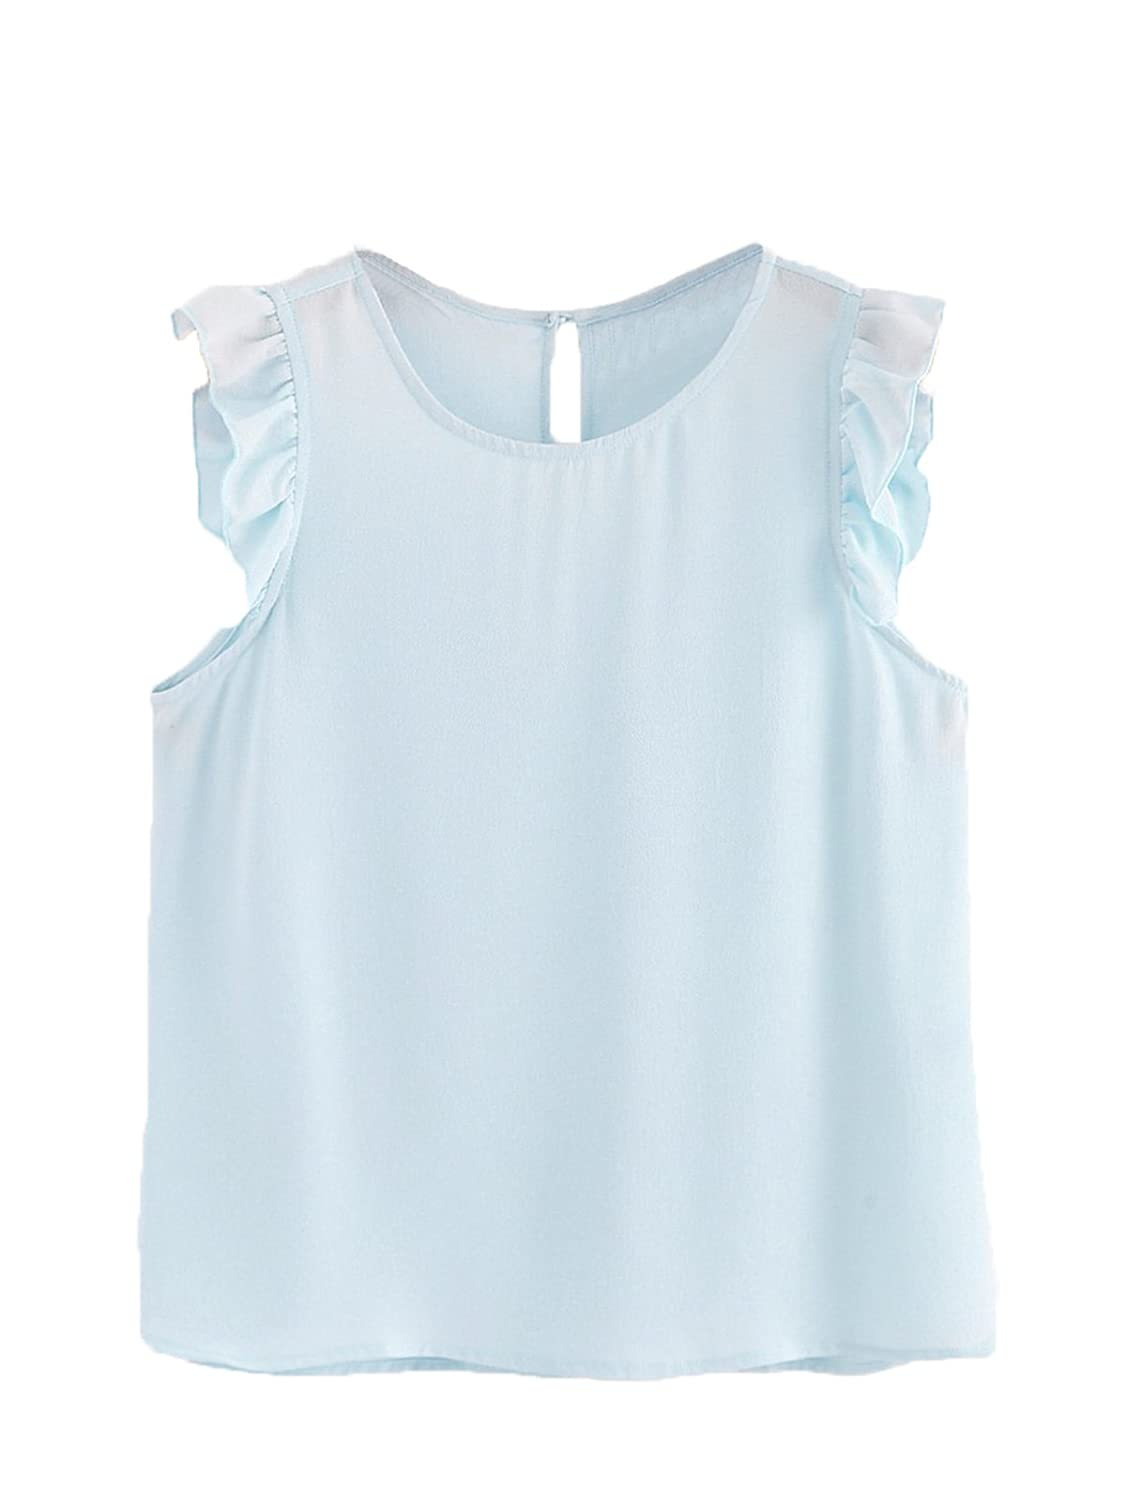 bluee Floerns Women's Summer Round Neck Sleeveless Frilled Keyhole Shirt Blouse Top Black